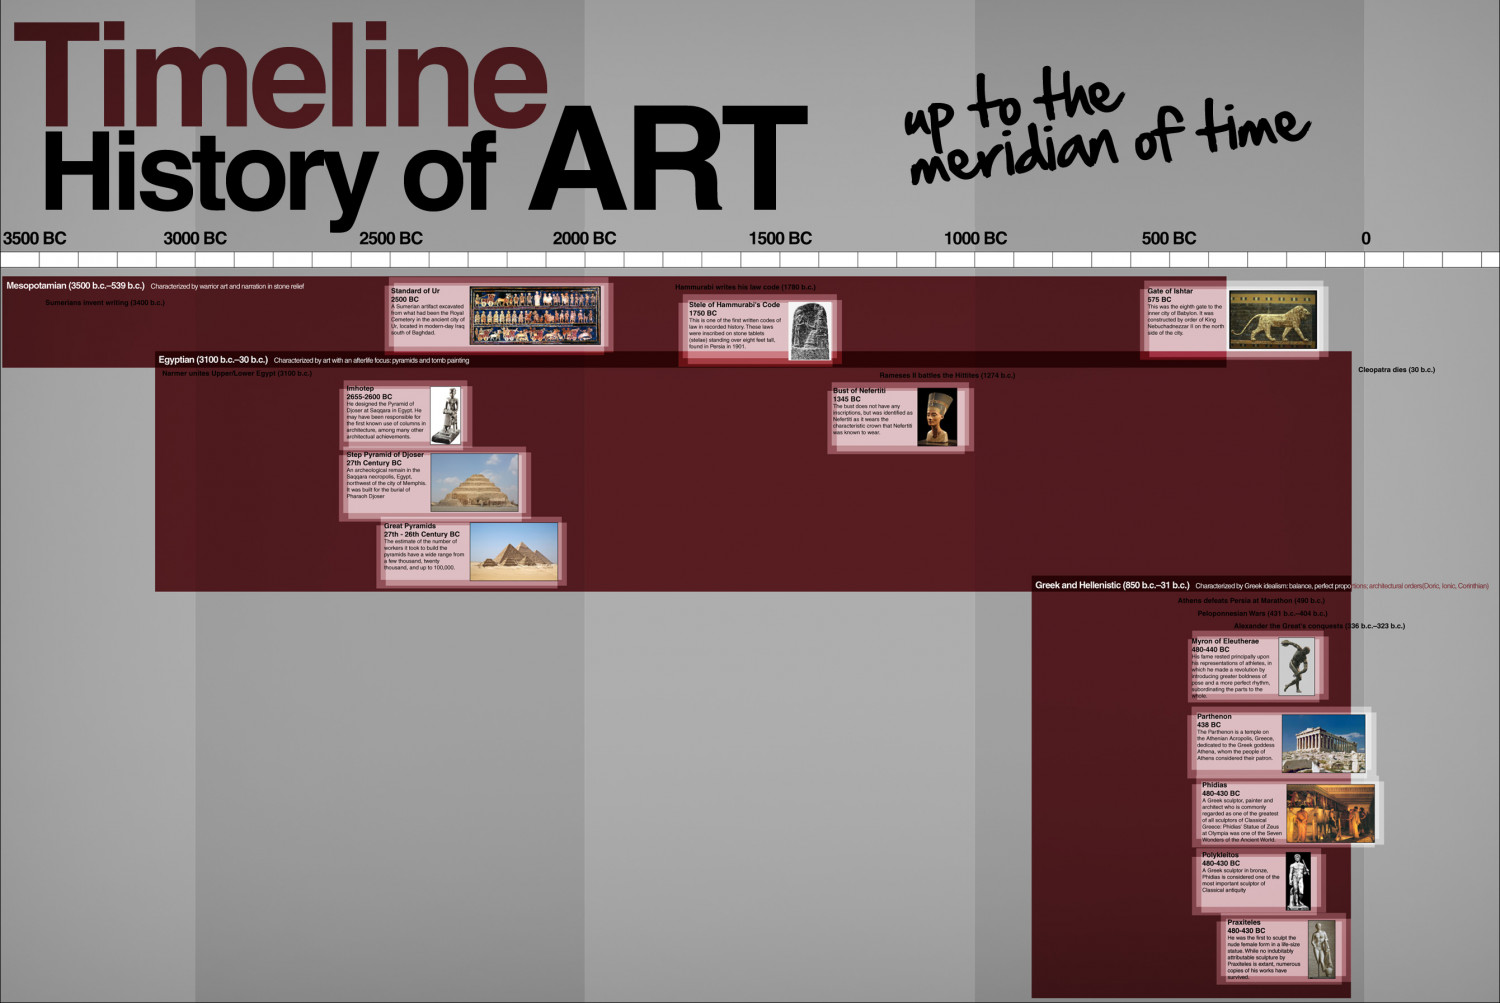 Timeline history of art visual timeline history of art infographic altavistaventures Image collections